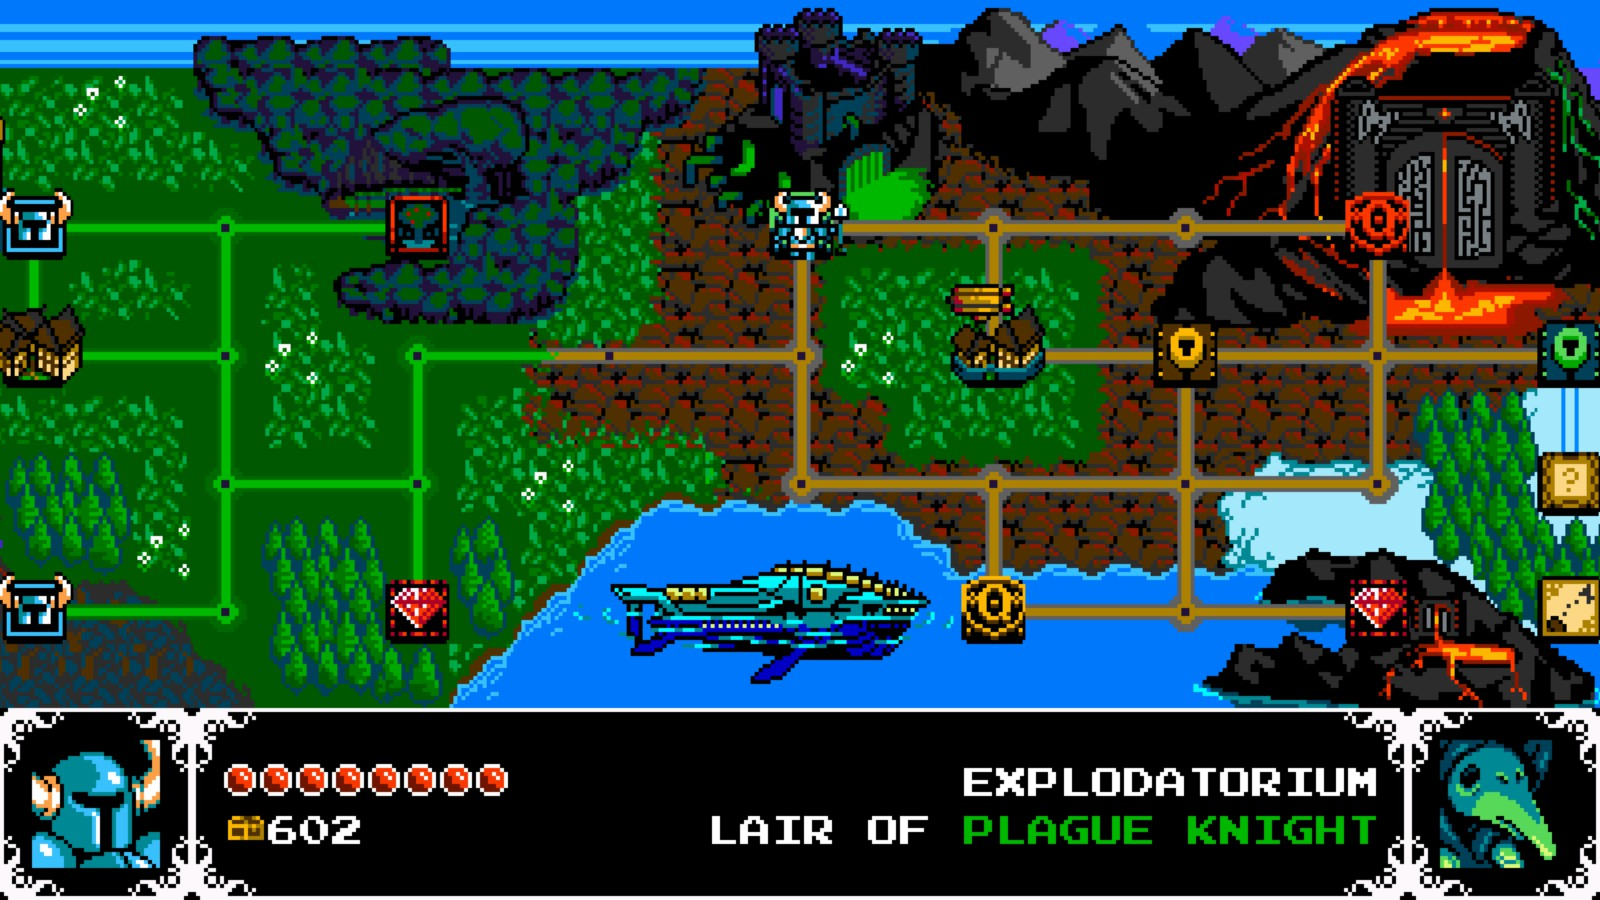 http://levelsave.com/wp-content/uploads/2014/06/shovel-knight-world-map.jpg